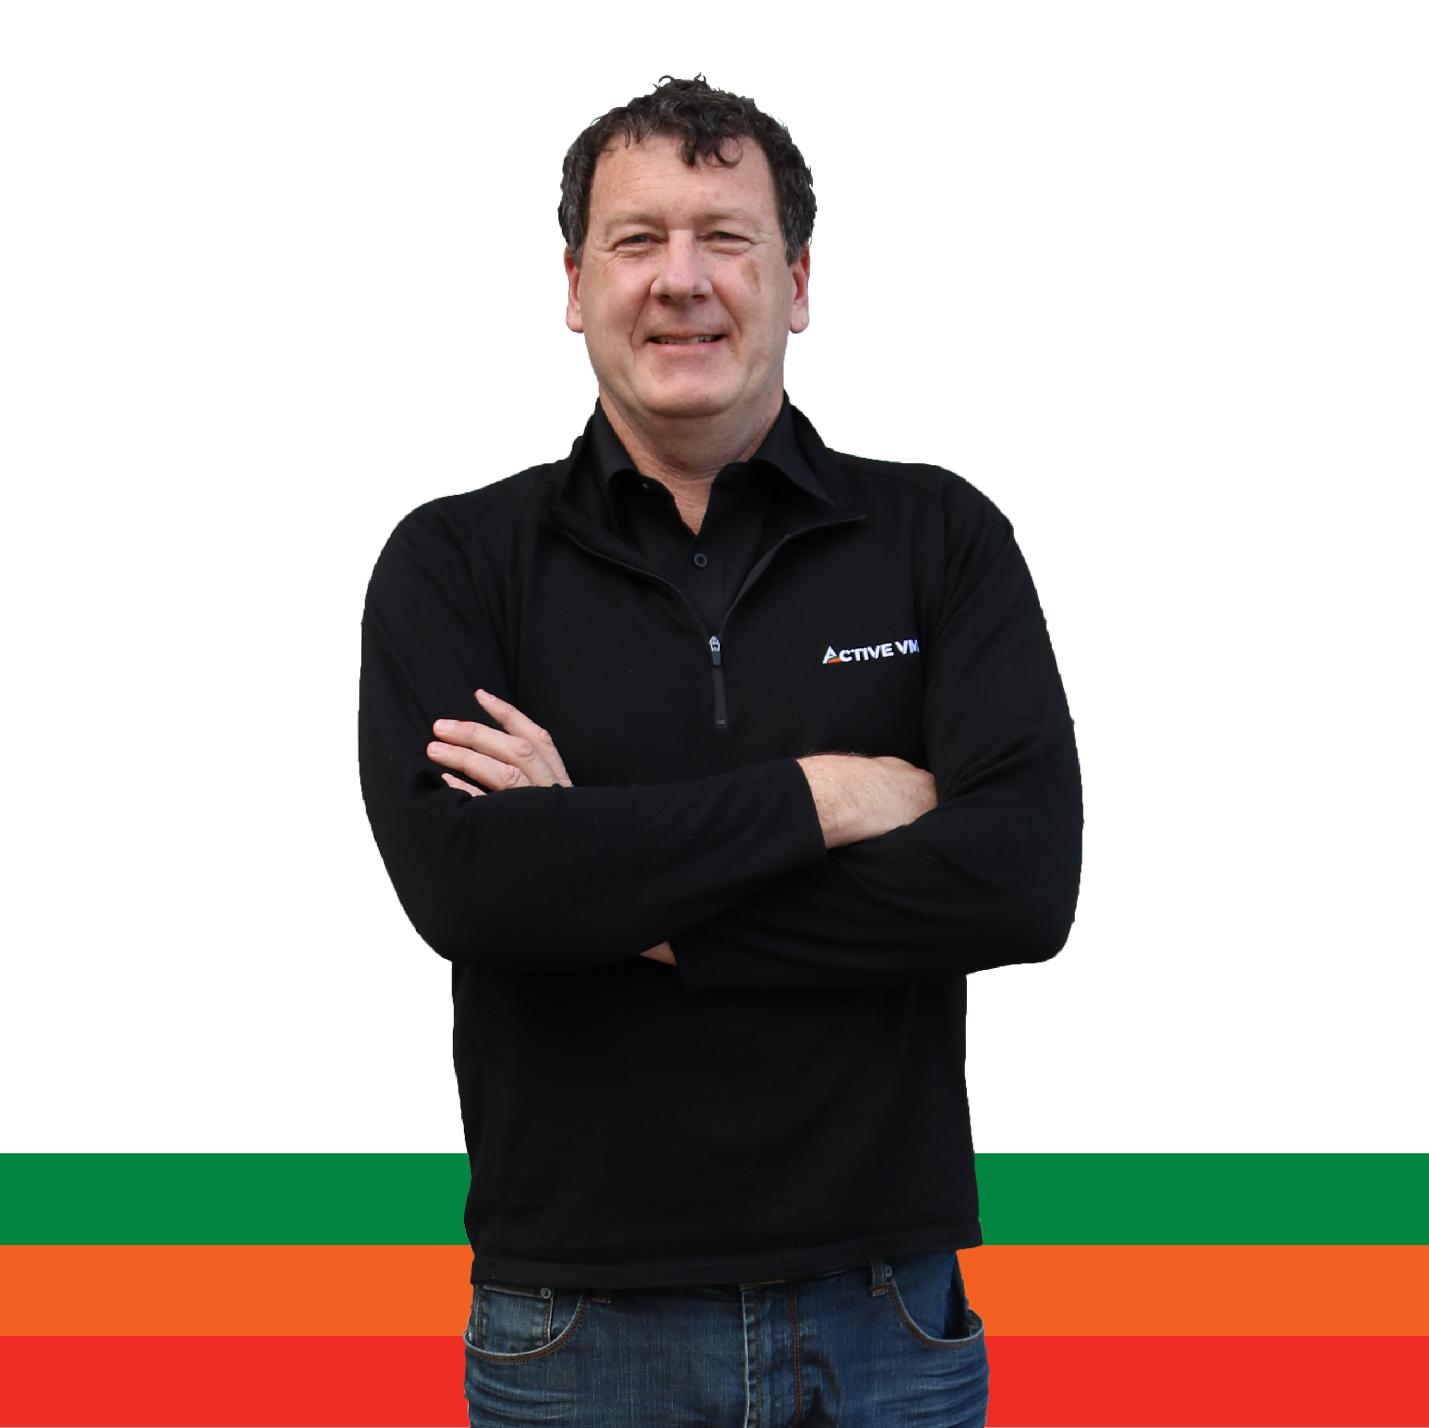 Greg Smith | Operations and Finance Manager | Active VMA